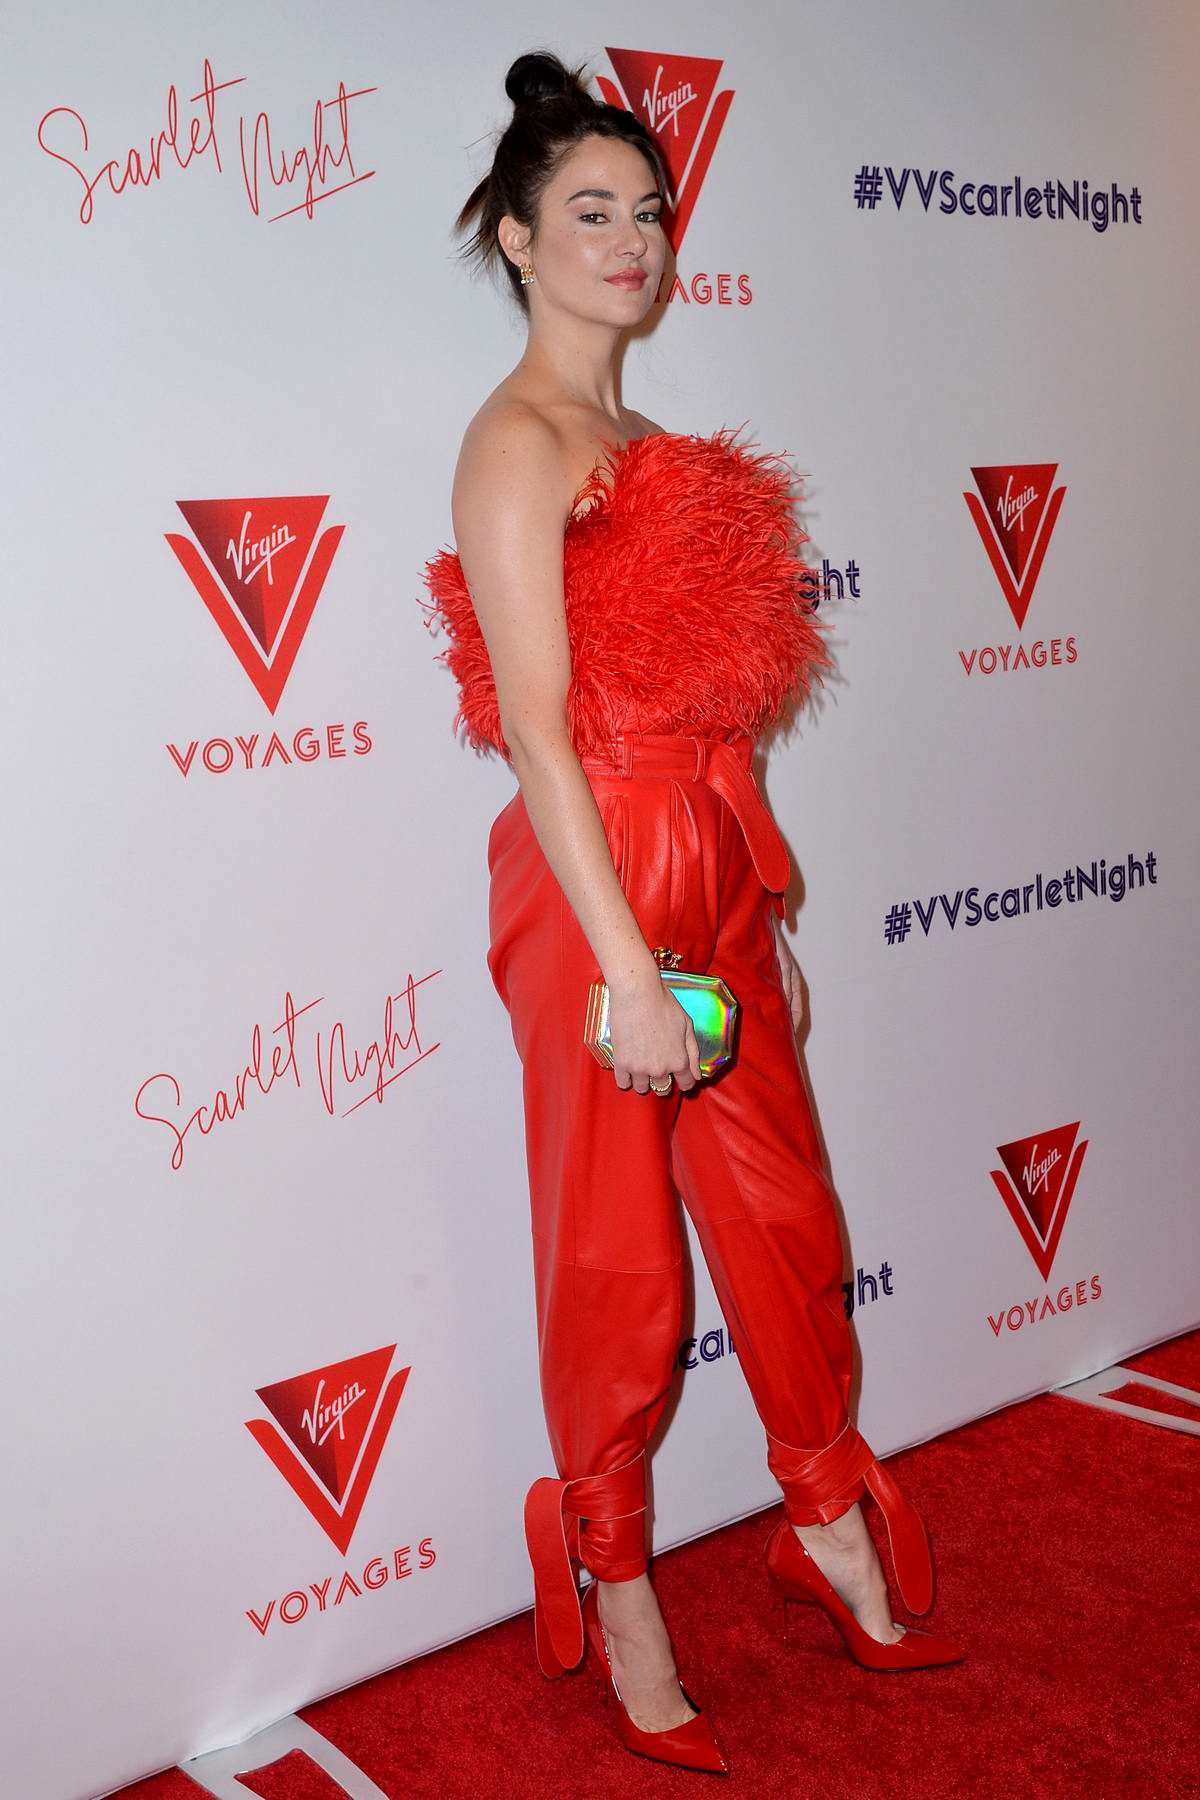 Shailene Woodley attends the Scarlet Night Party hosted by Virgin Voyages at PlayStation Theater in New York City